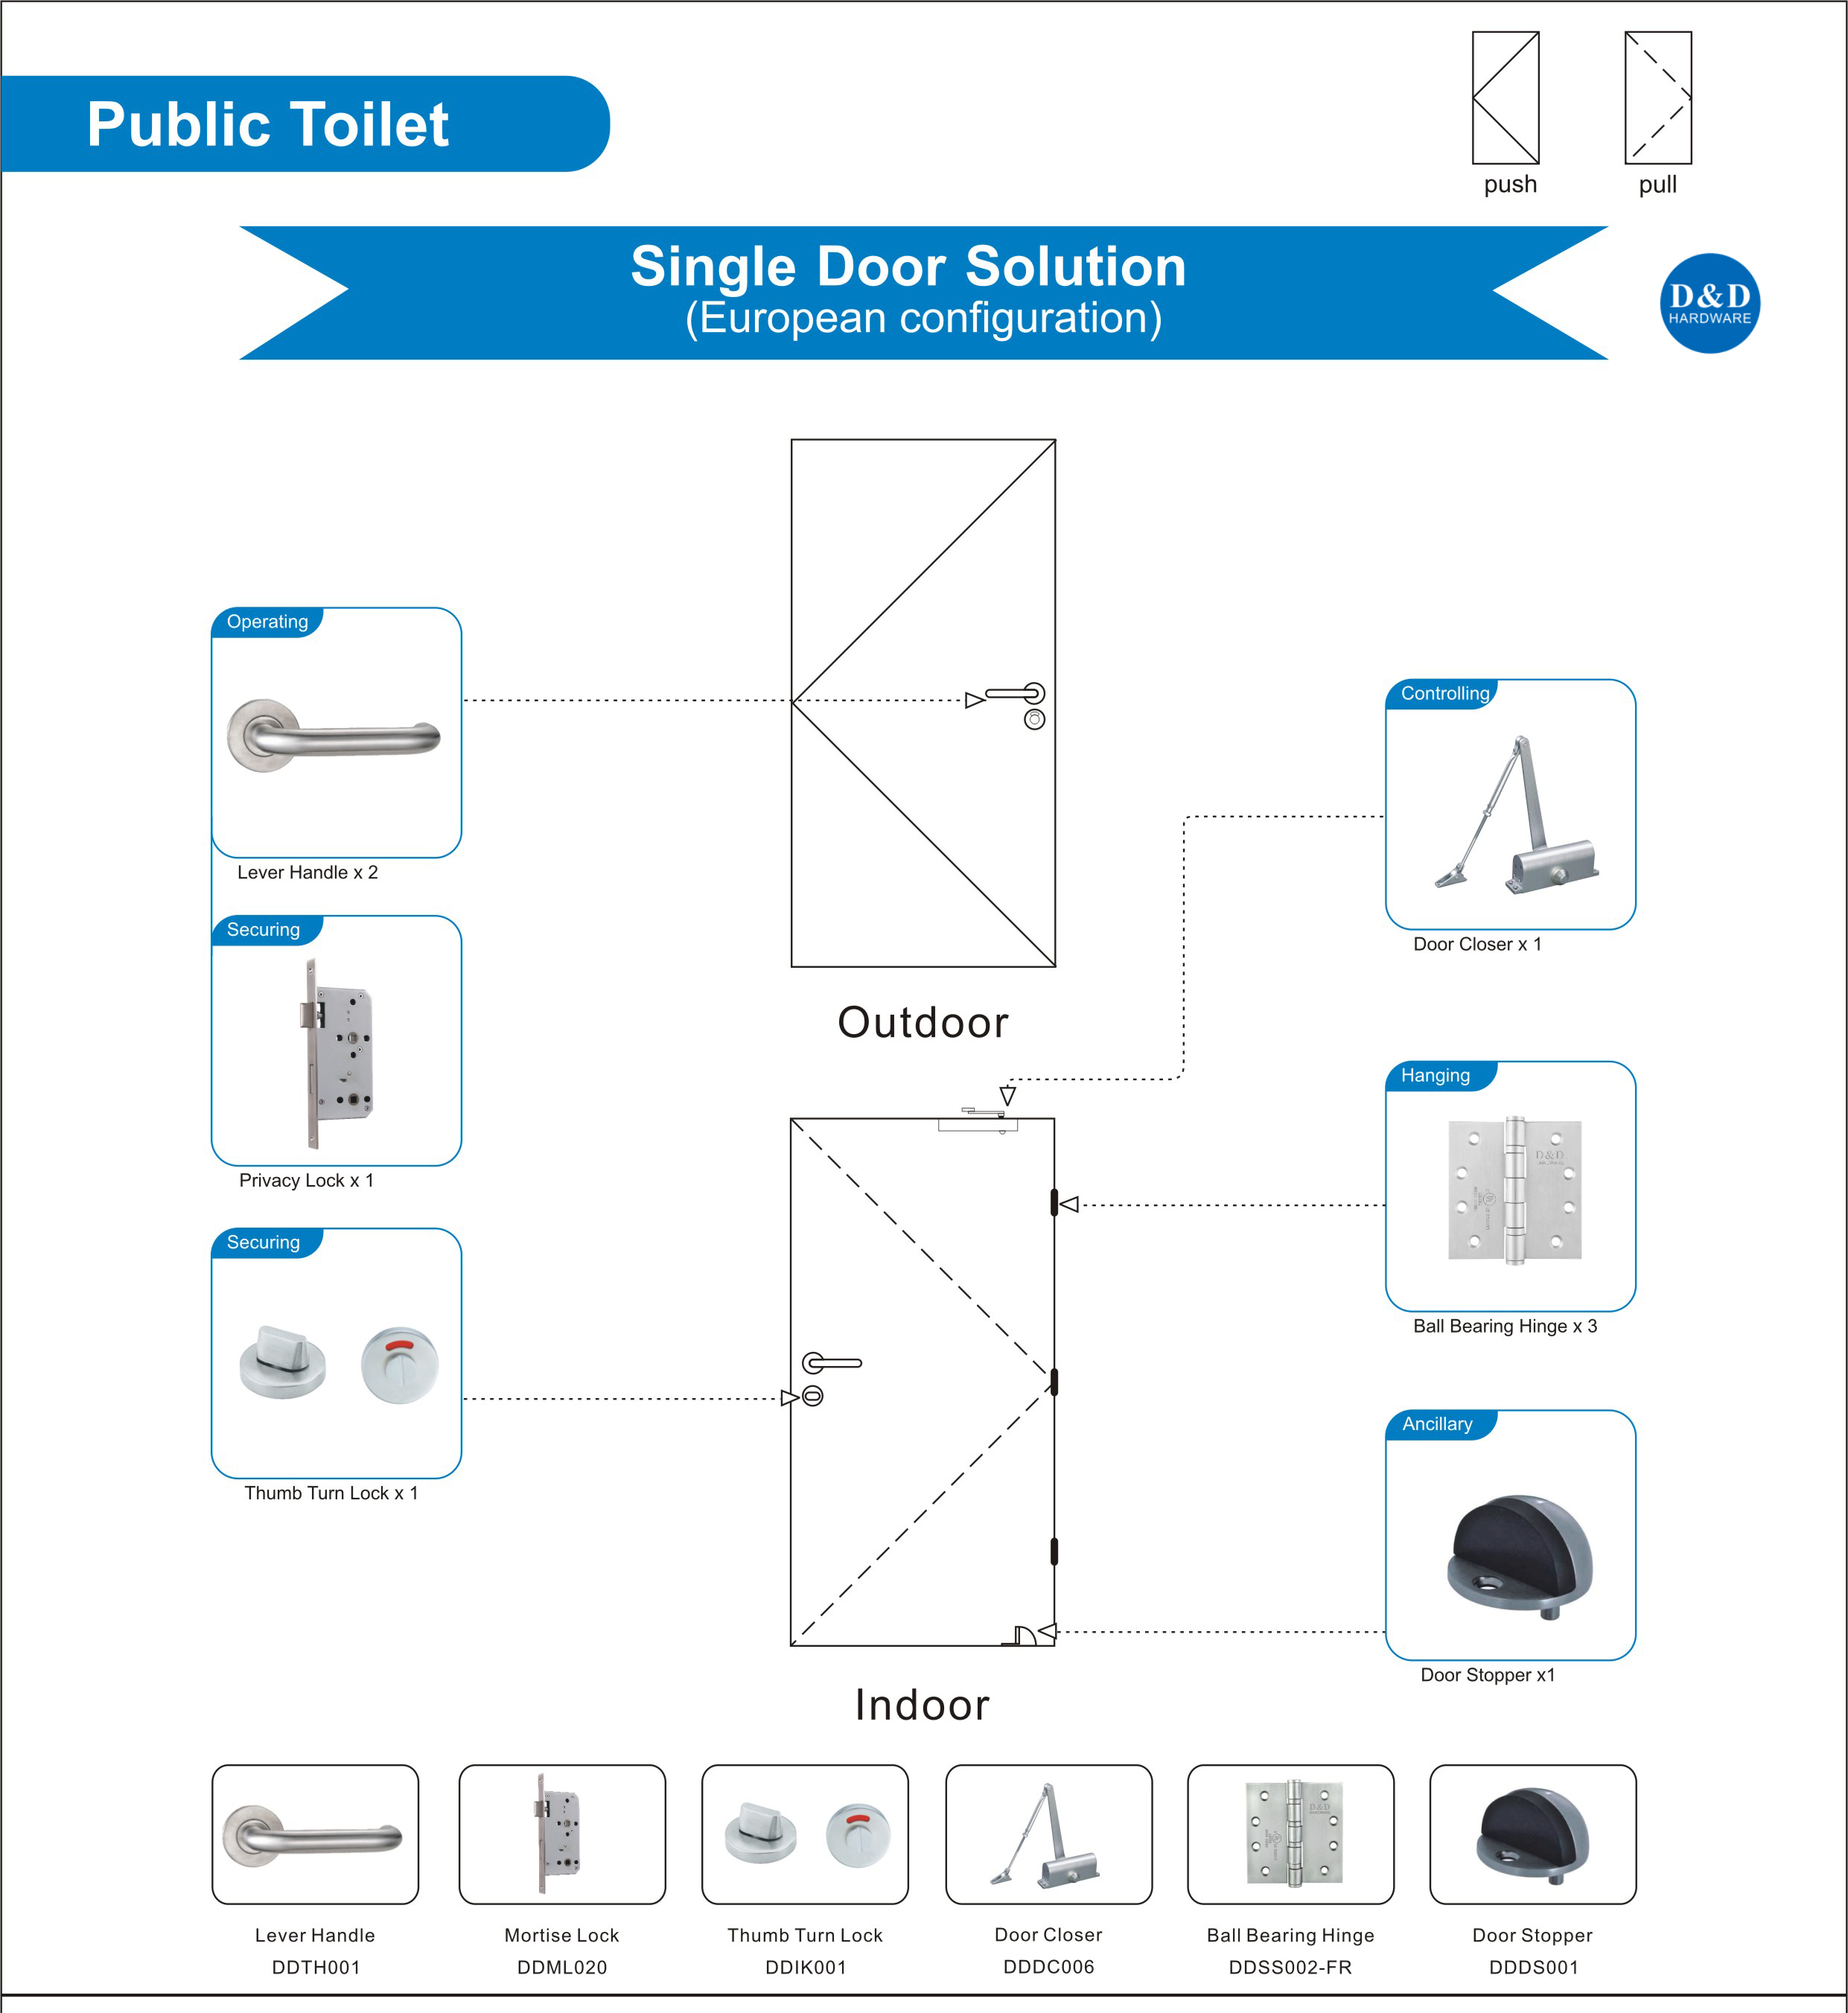 Wood Door Opening Solution for Public Toilet Single Door